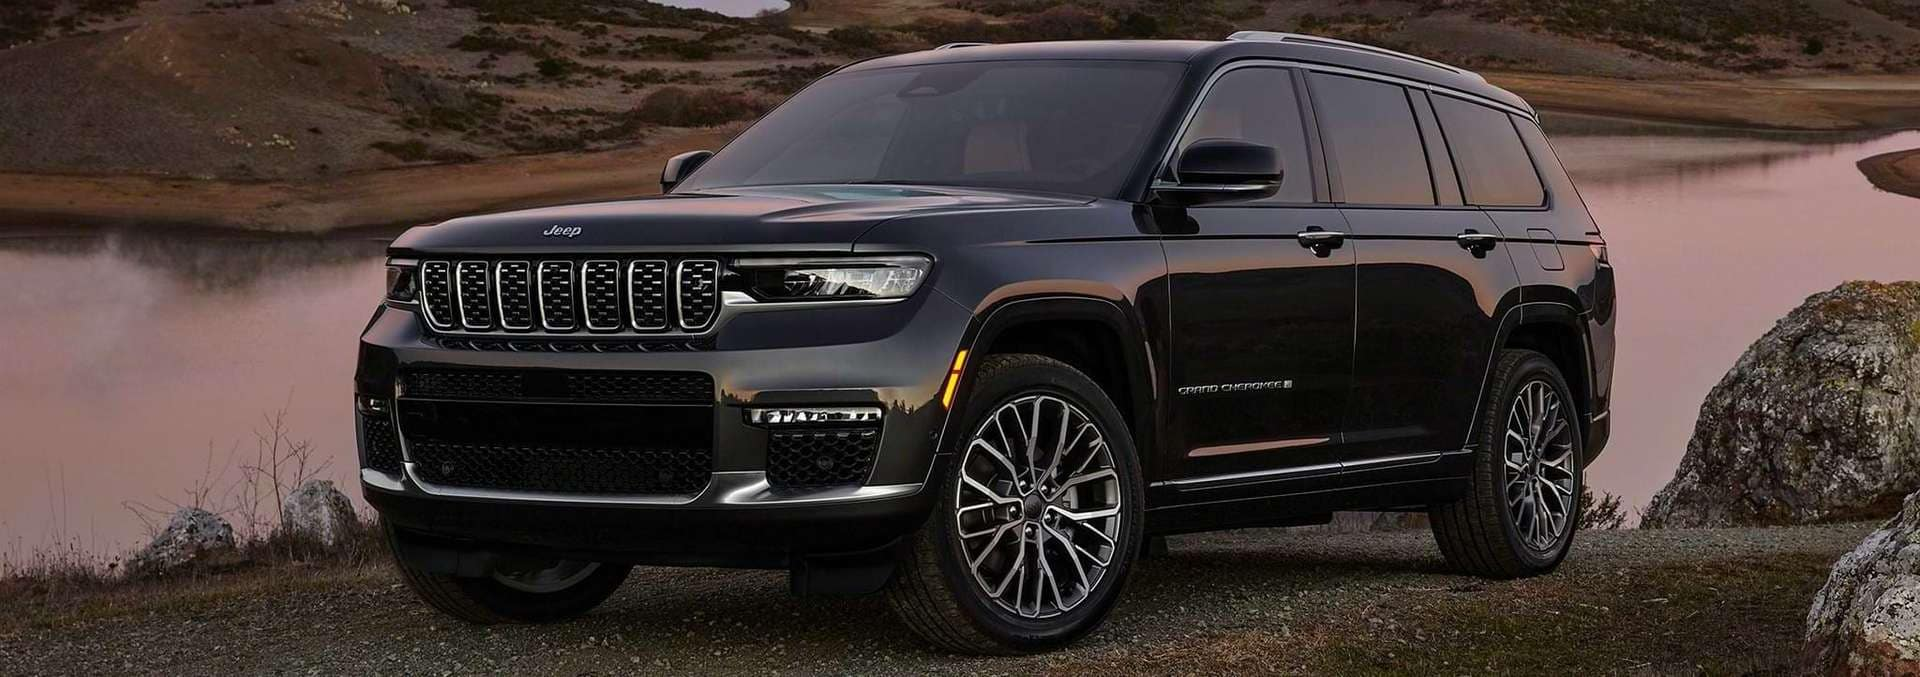 2021 Jeep Grand Cherokee L For Sale in Oklahoma city